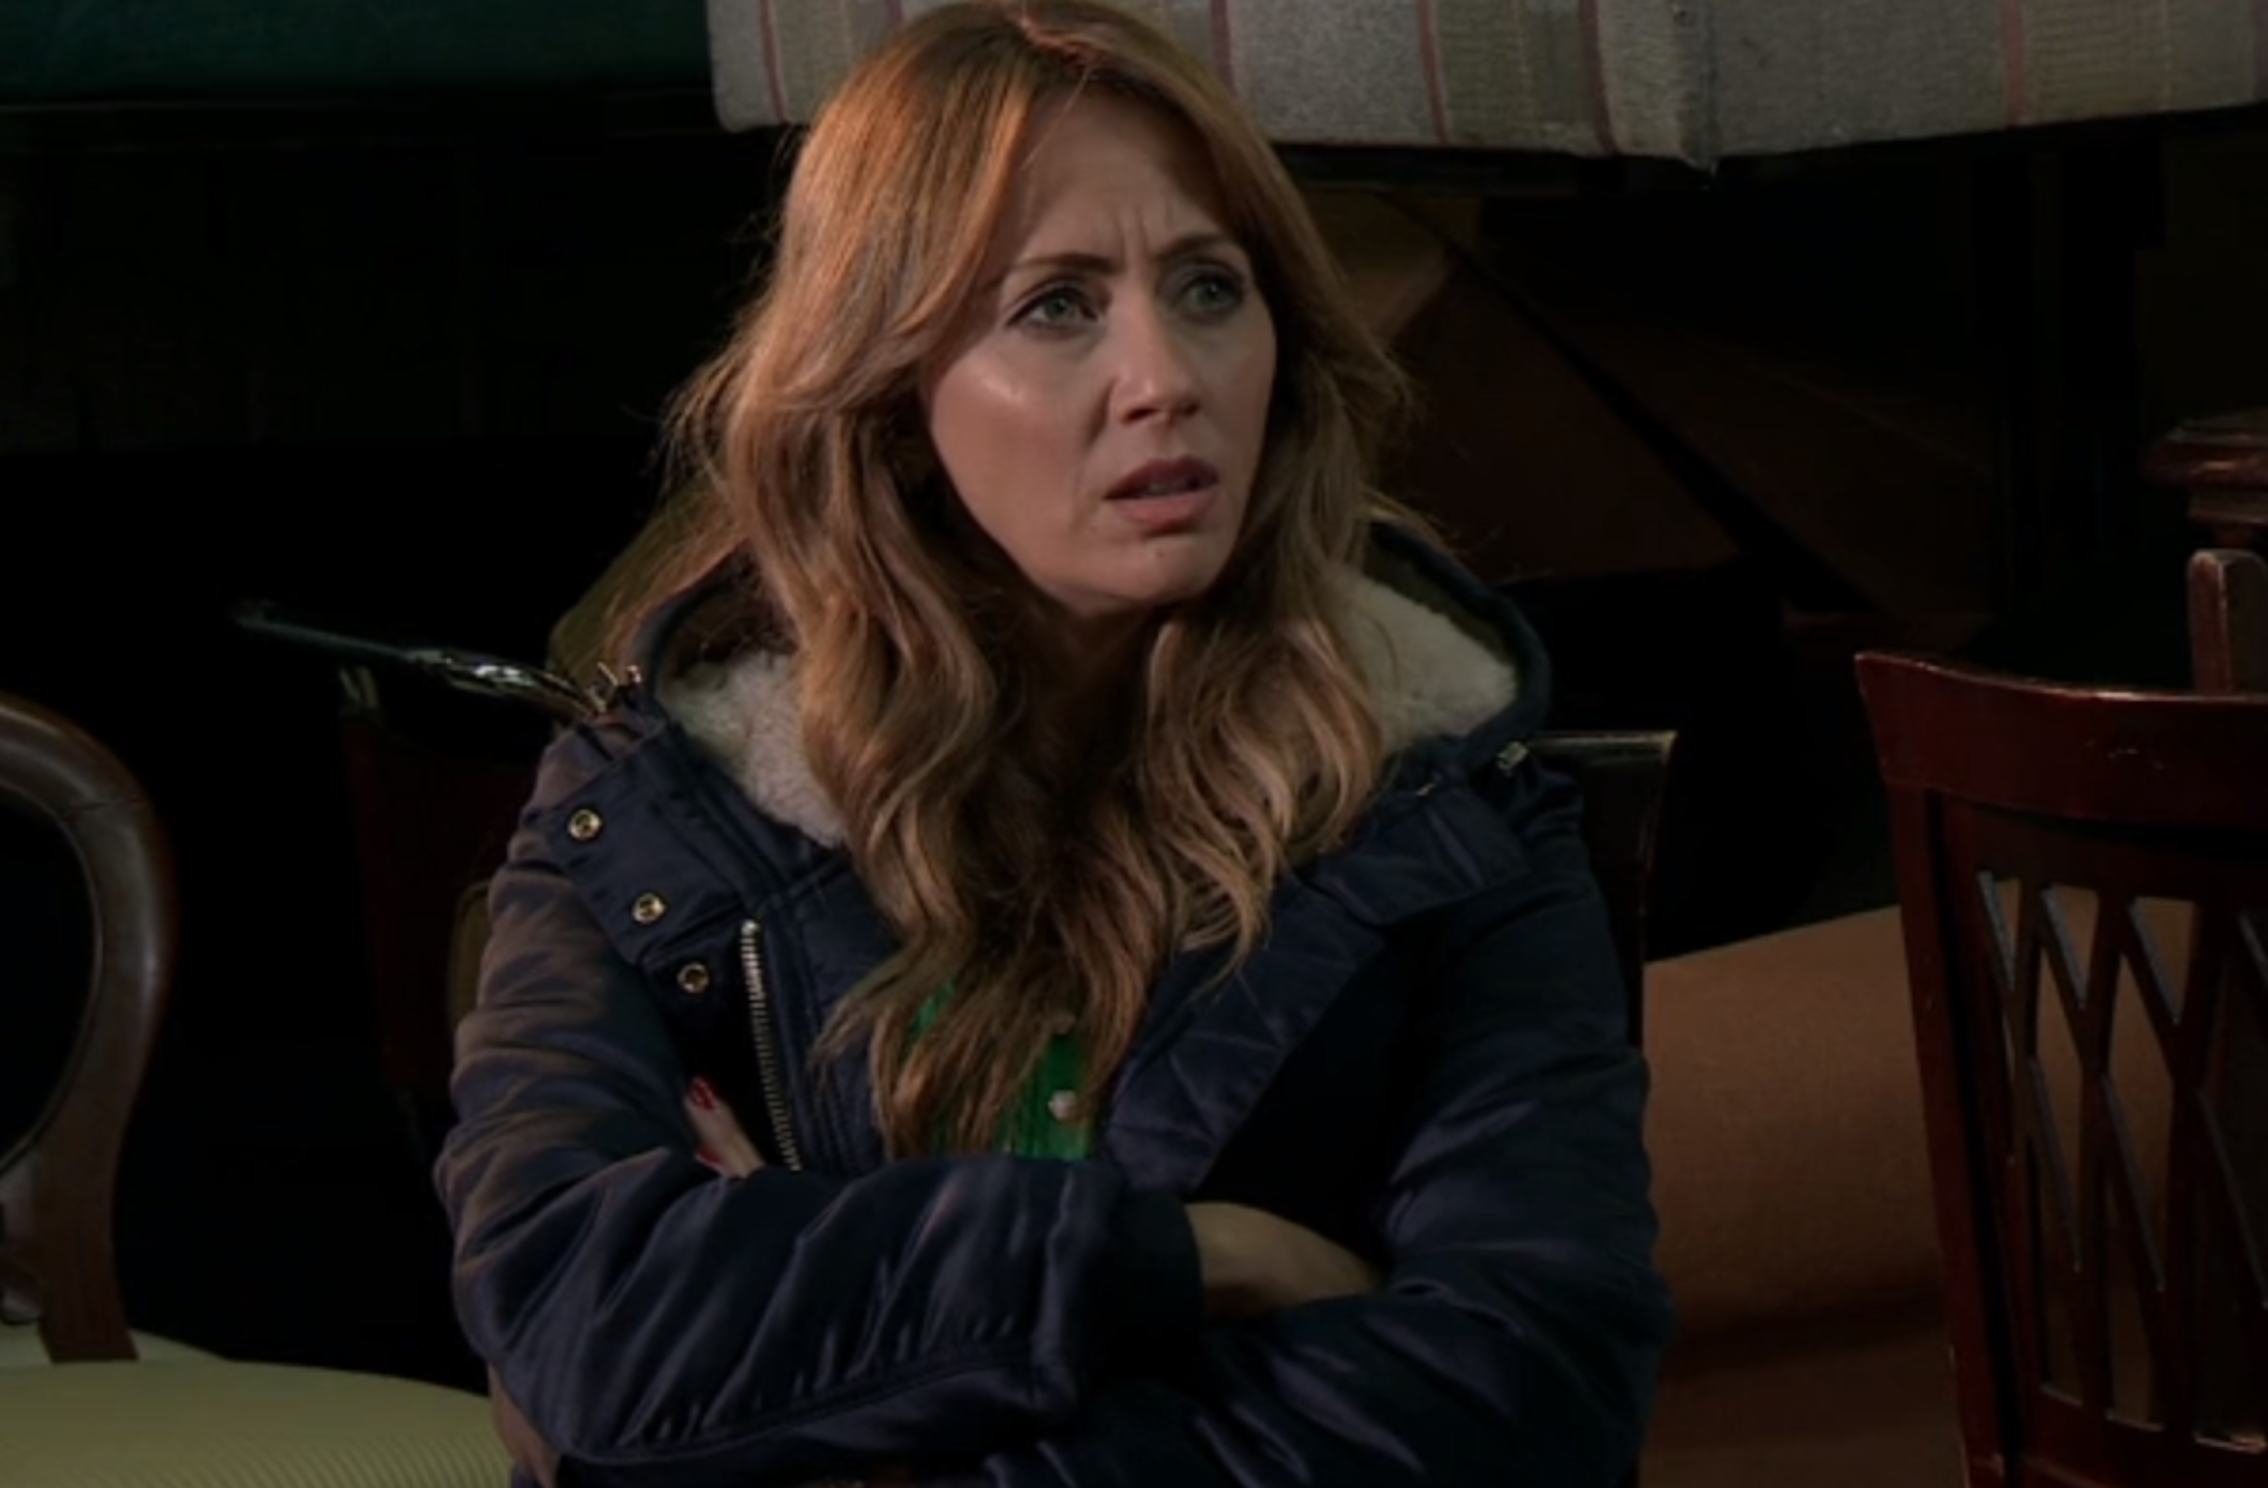 Corrie's Samia Longchambon begs parents to vaccinate their babies ahead of Maria measles storyline